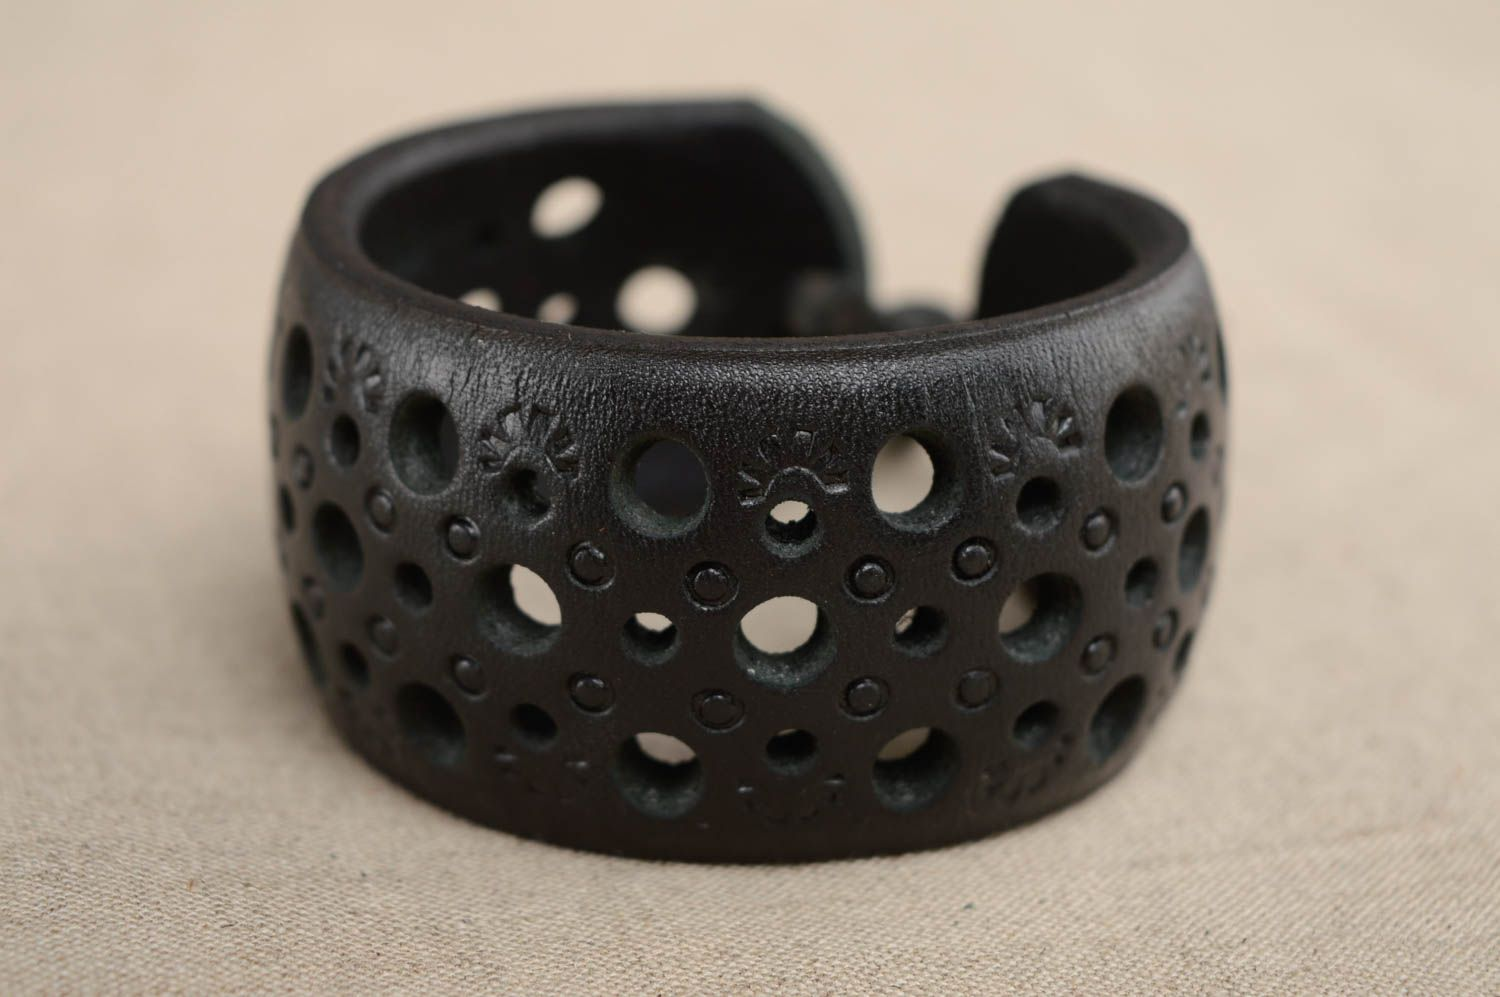 leather bracelets Wide leather bracelet with carving and embossing - MADEheart.com